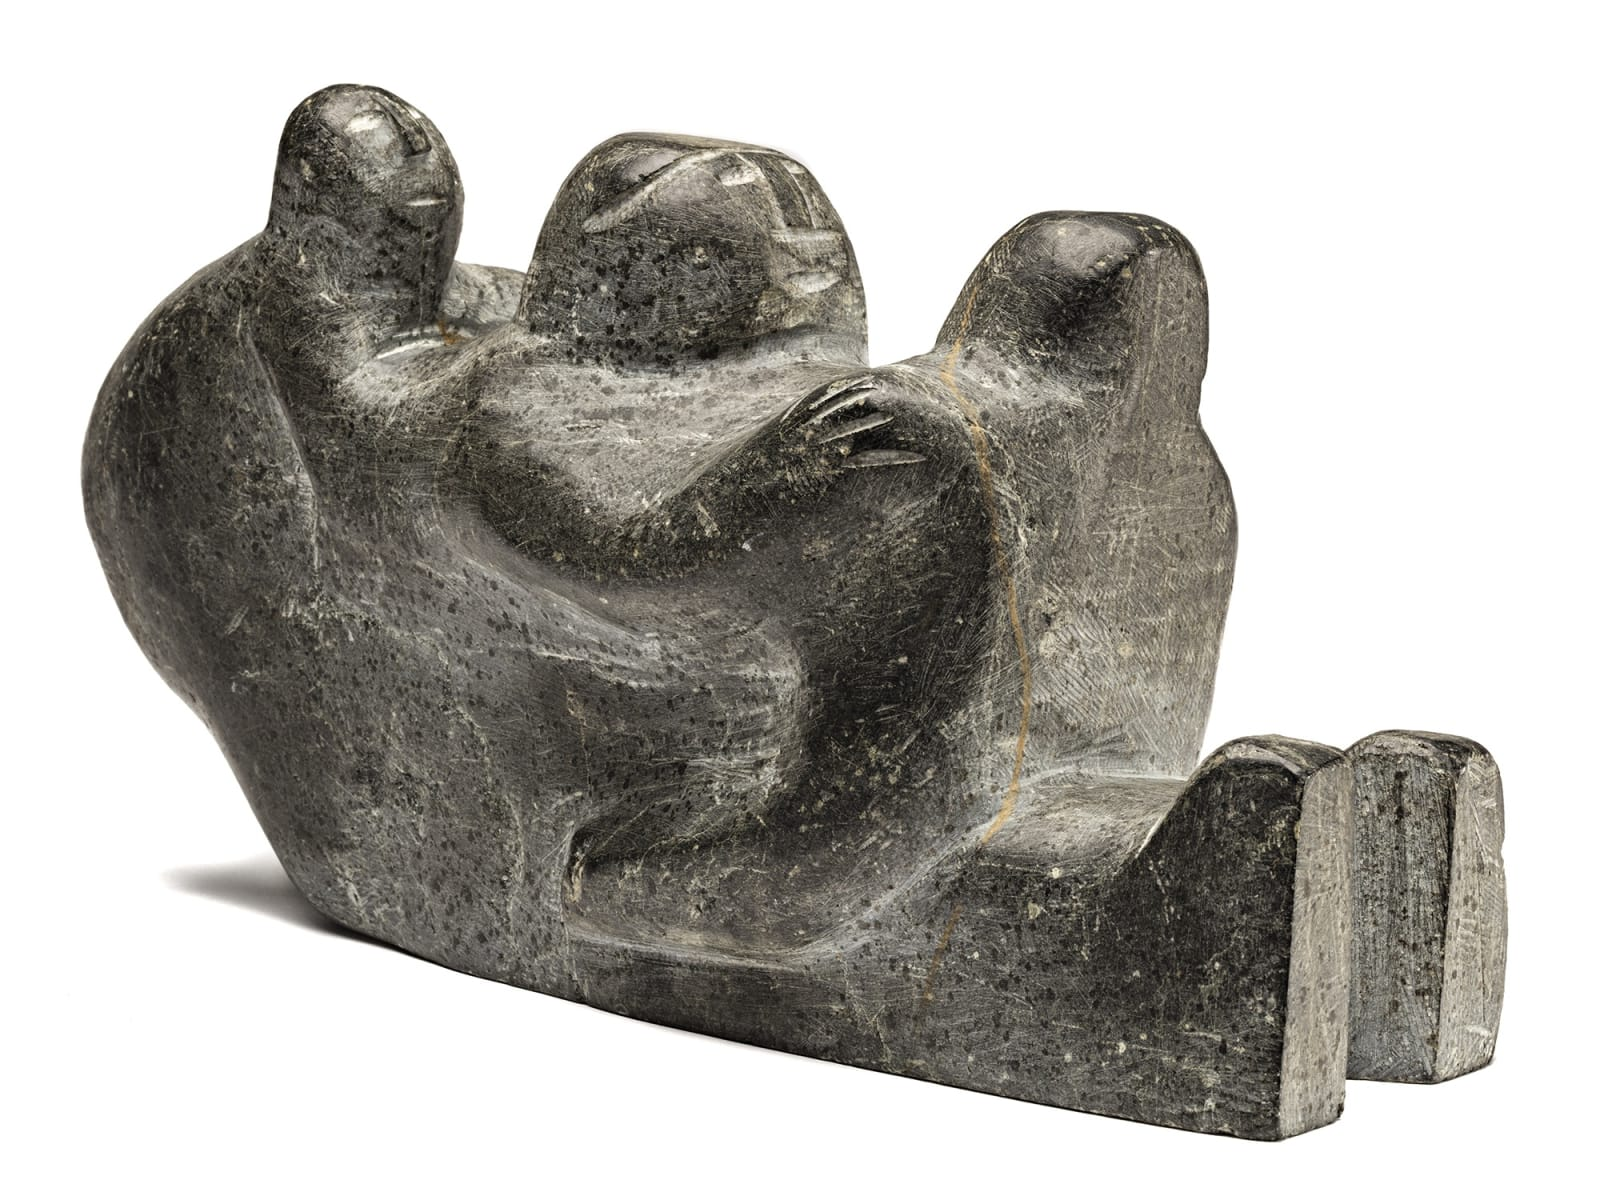 Lot 112 AUGUSTIN ANAROSUK (1917-1976) ARVIAT (ESKIMO POINT) Seated Mother Holding Her Two Children, mid-late 1960s stone, 6 x 11.25 x 4.25 in (15.2 x 28.6 x 10.8 cm) Estimate: $1,200⁠⁠⁠— $1,800